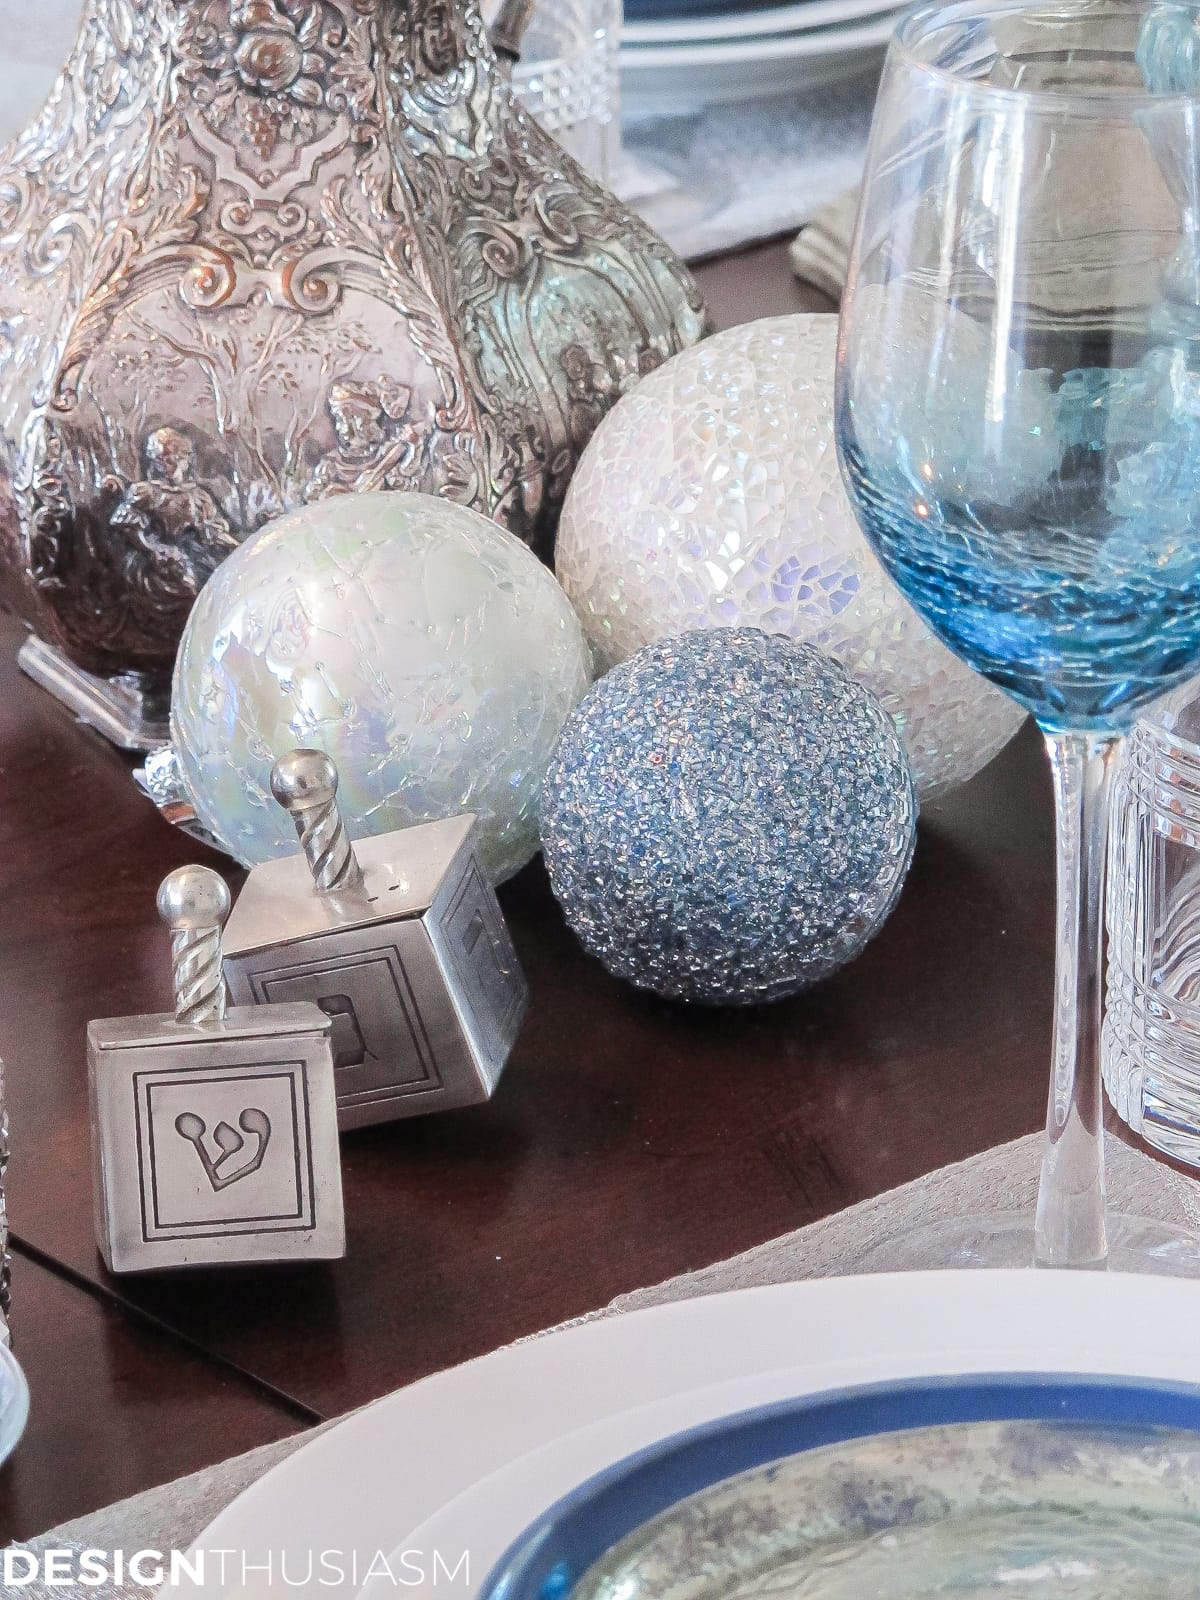 Festival of Lights Hanukkah Table Setting | Designthusiasm.com